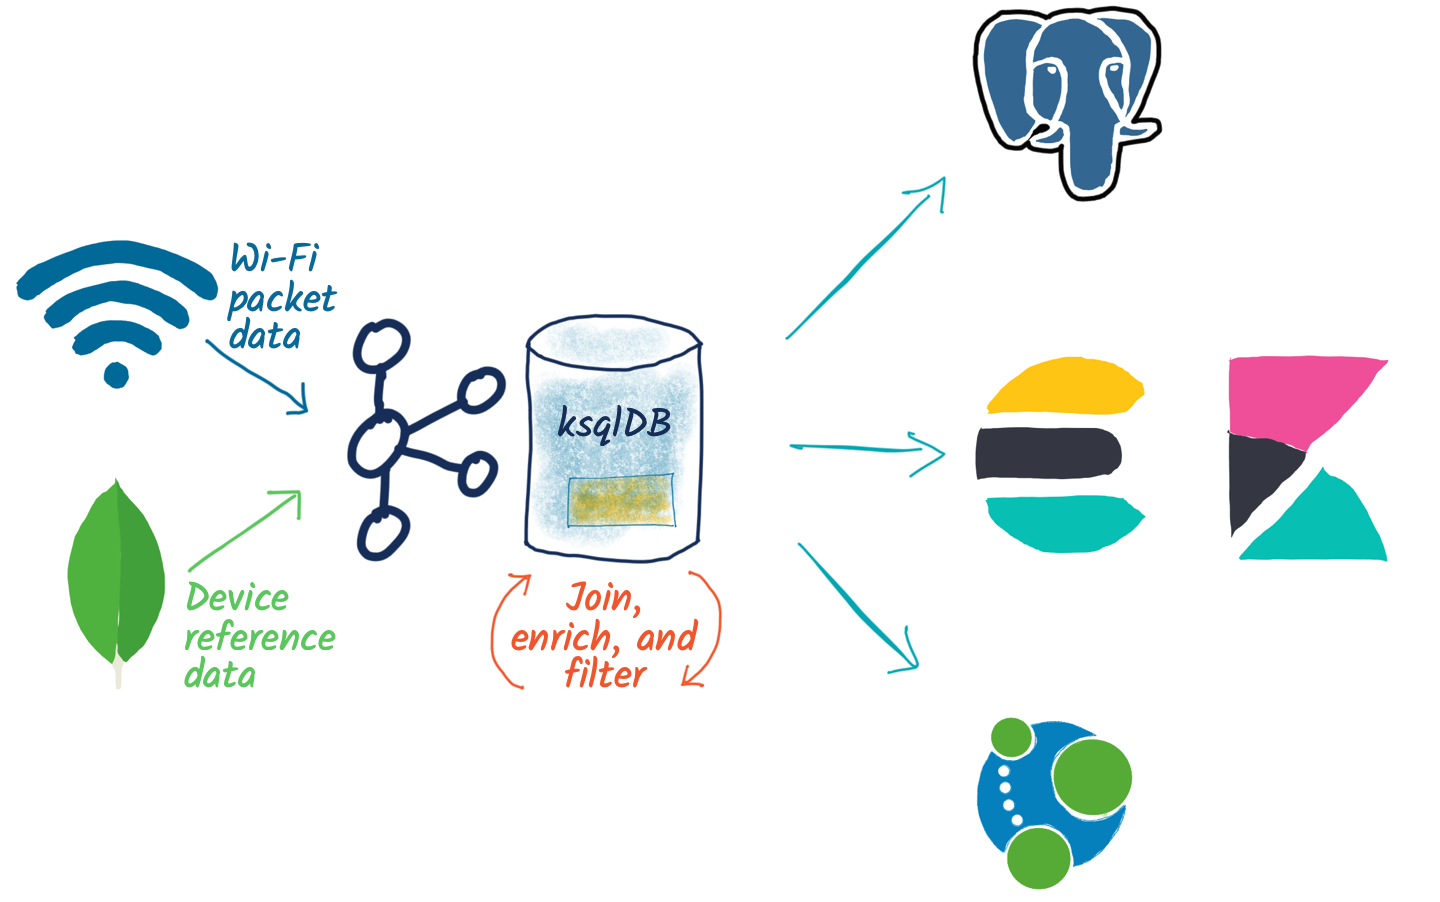 Wi-Fi packet data | Device reference data ➝ Kafka | ksqlDB ➝ Postgres | Elasticsearch, Kibana | Neo4j